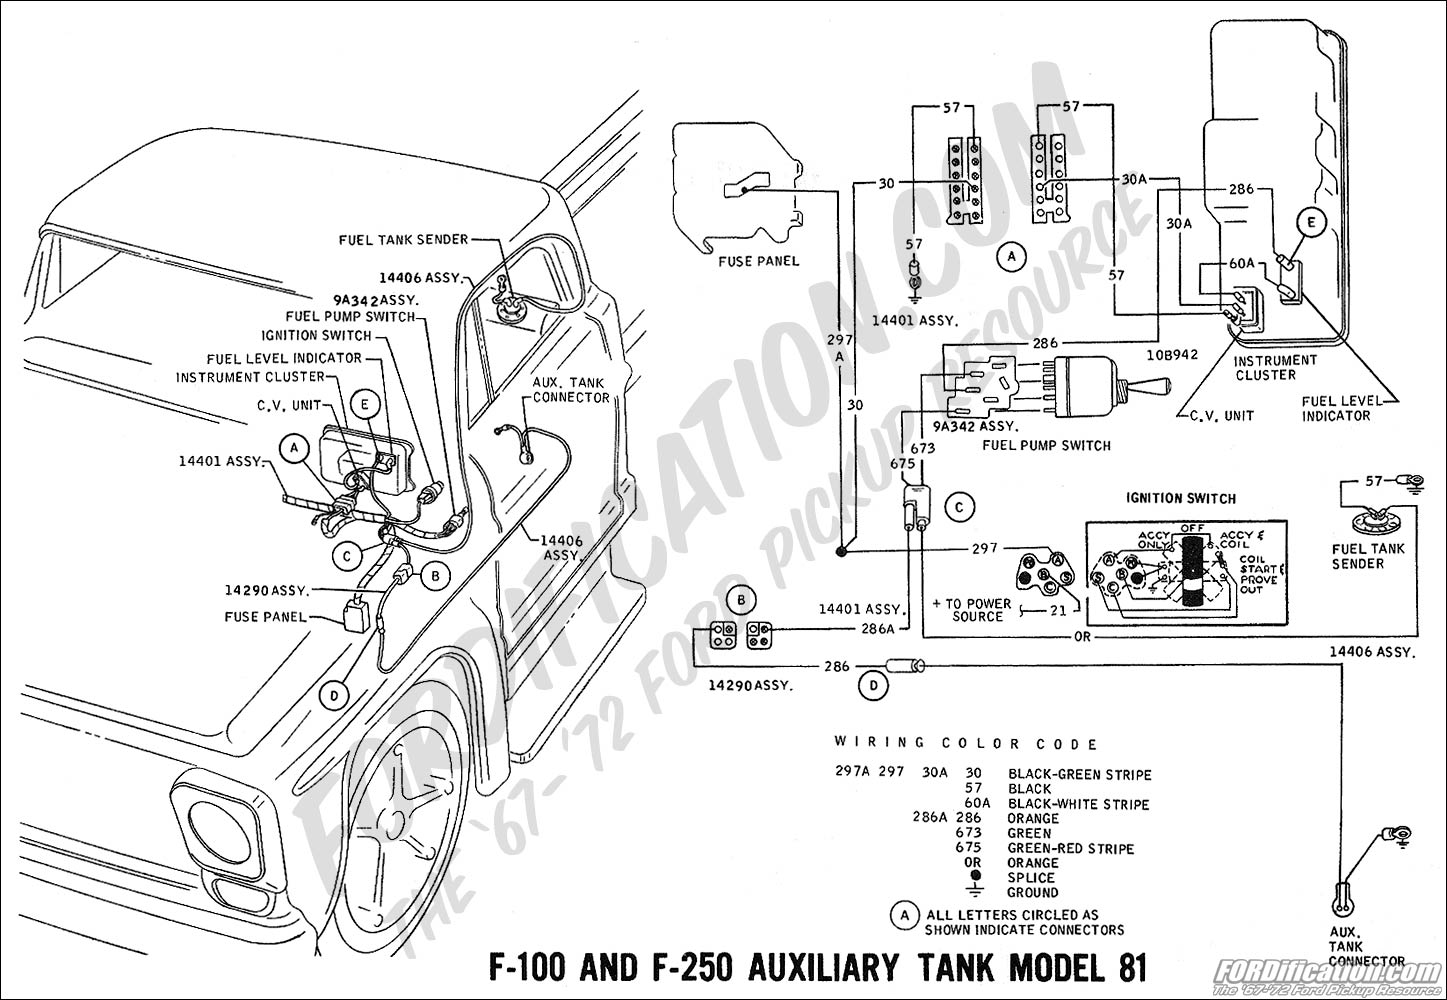 5ekd9 Ford F350 Super Duty Emergency Flashers Directional Lights additionally 128158 Wiring Diagram For 1985 Ford F150 furthermore 4au1f 1995 Ford E 150 Van 4 9 Liter Without Ac furthermore T10532603 Need wiring diagram 2000 f250 7 3l power also 2000 Ford F250 5 4 Fuse Panel. on ford e 250 fuse box